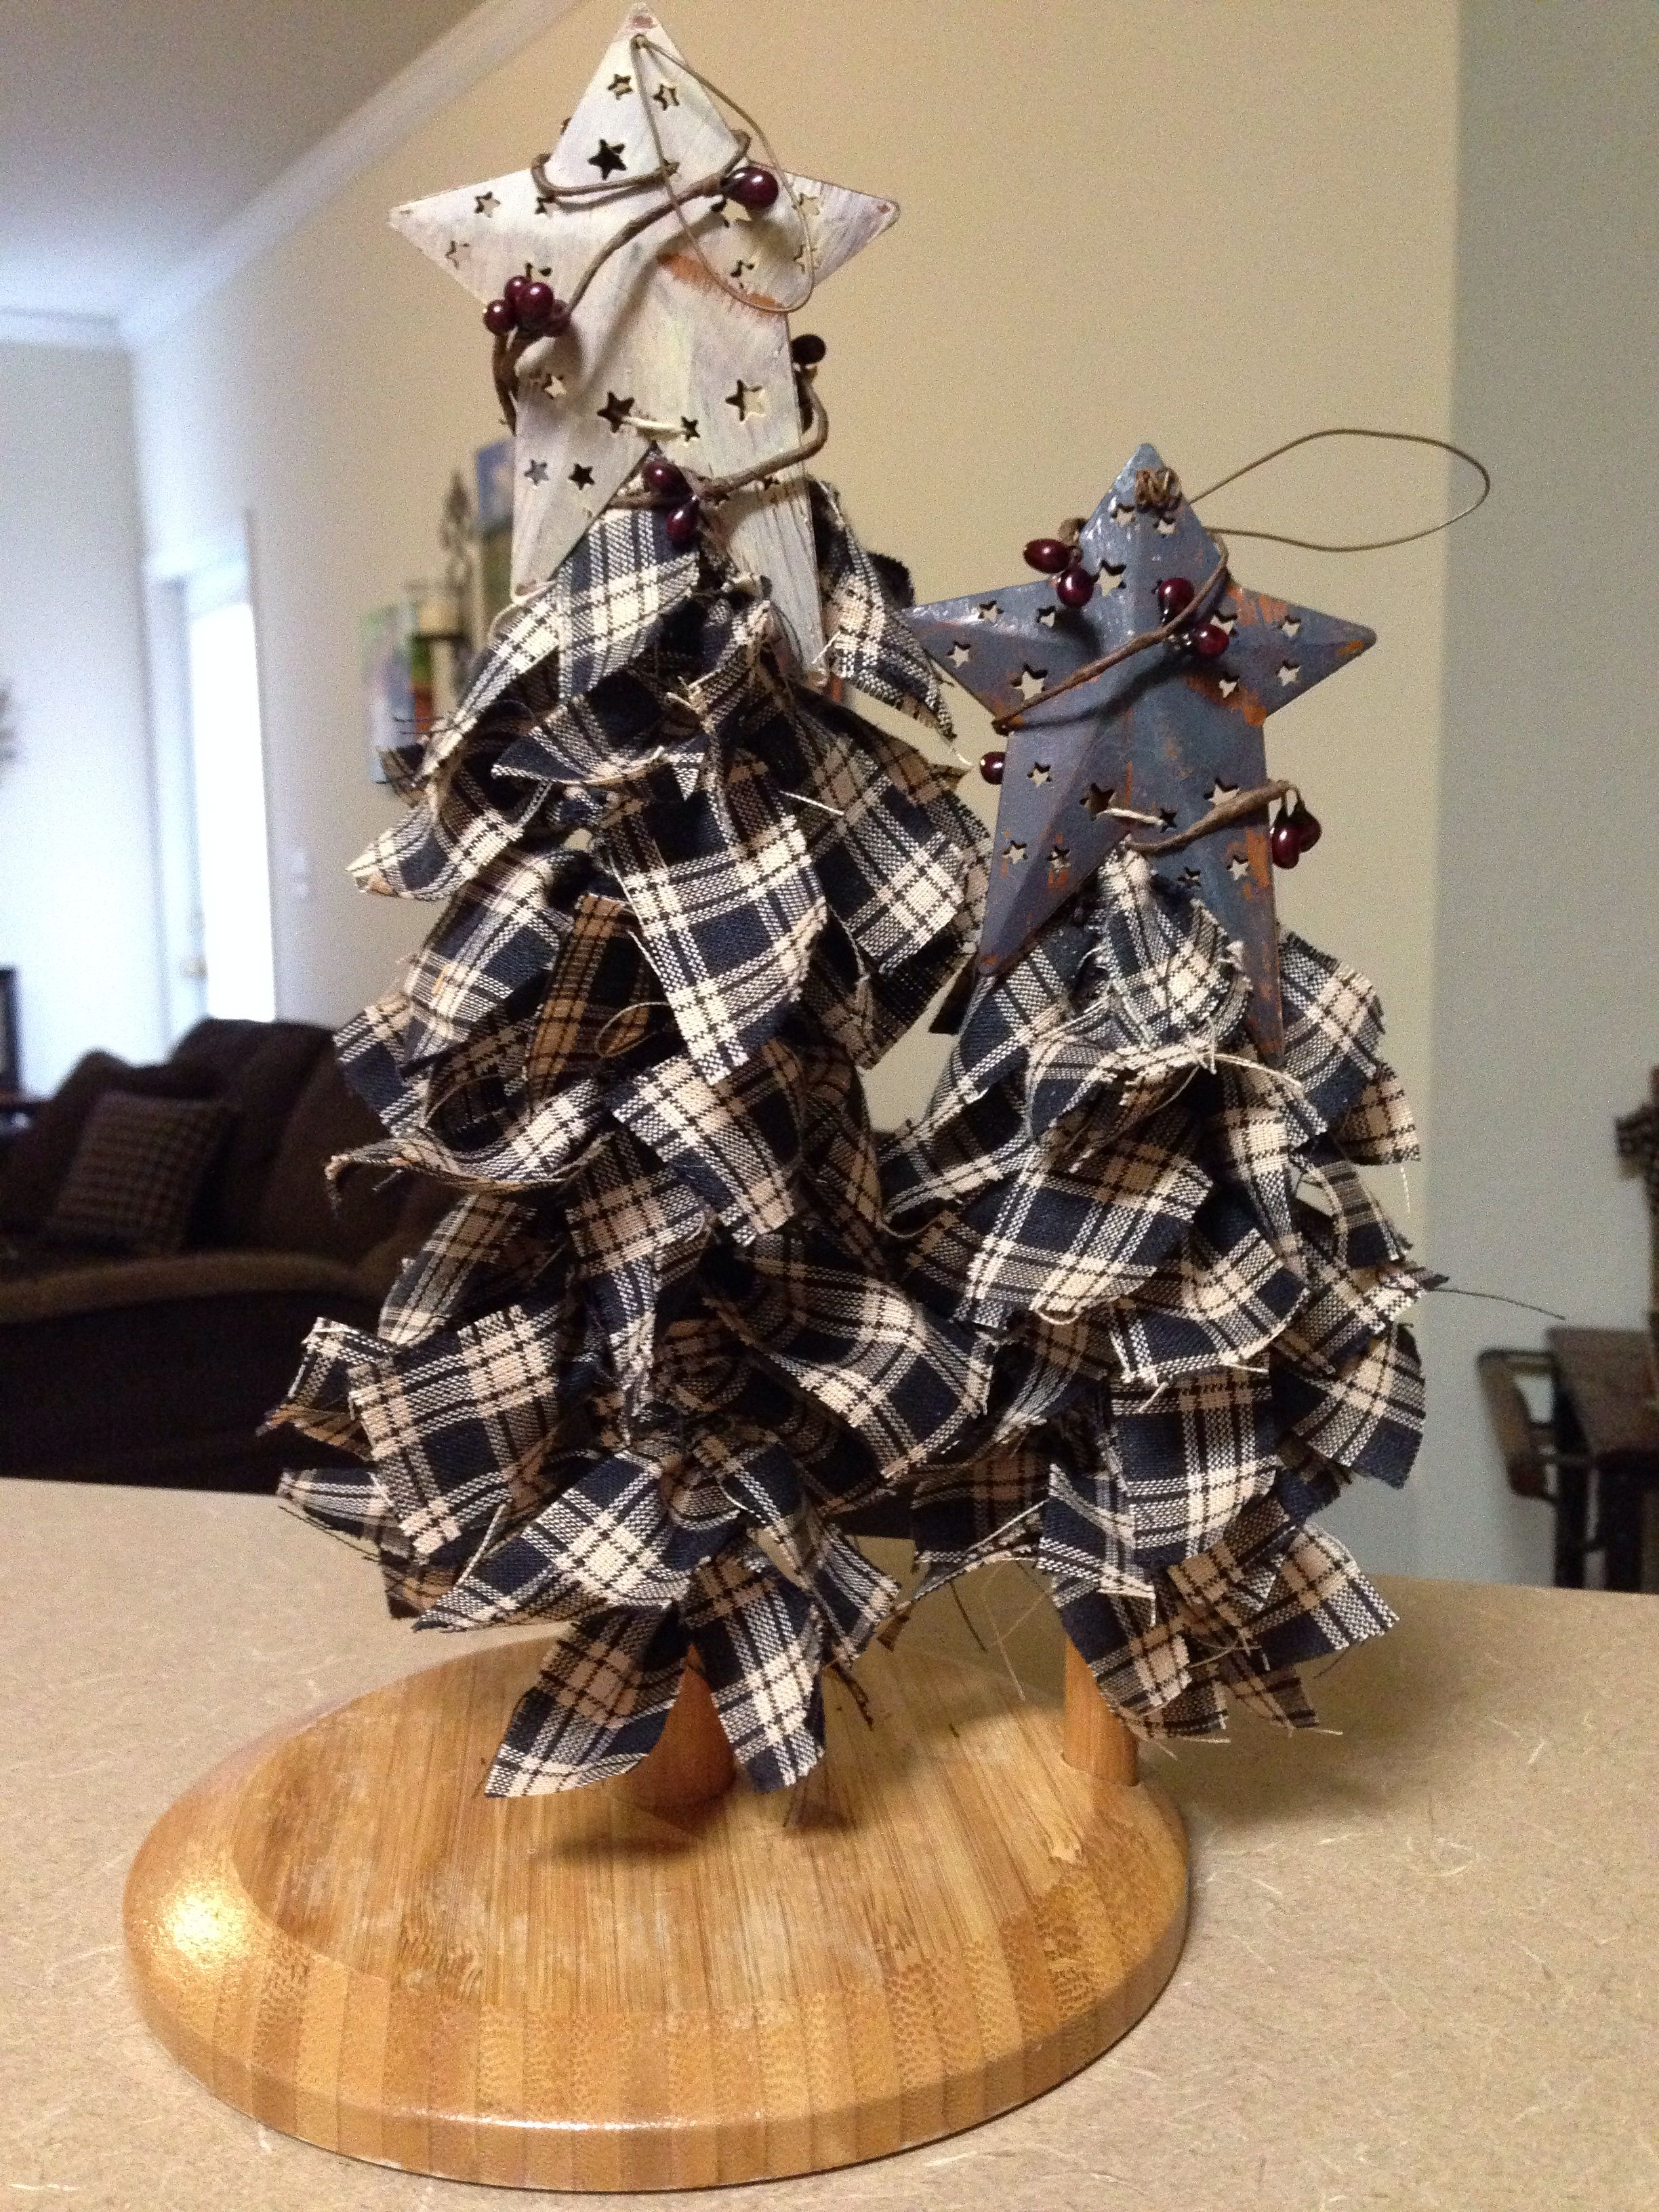 Recycled paper towel holder and some homespun fabric :) I love how it turned out. These Christmas trees fit nicely with my primitive decor!